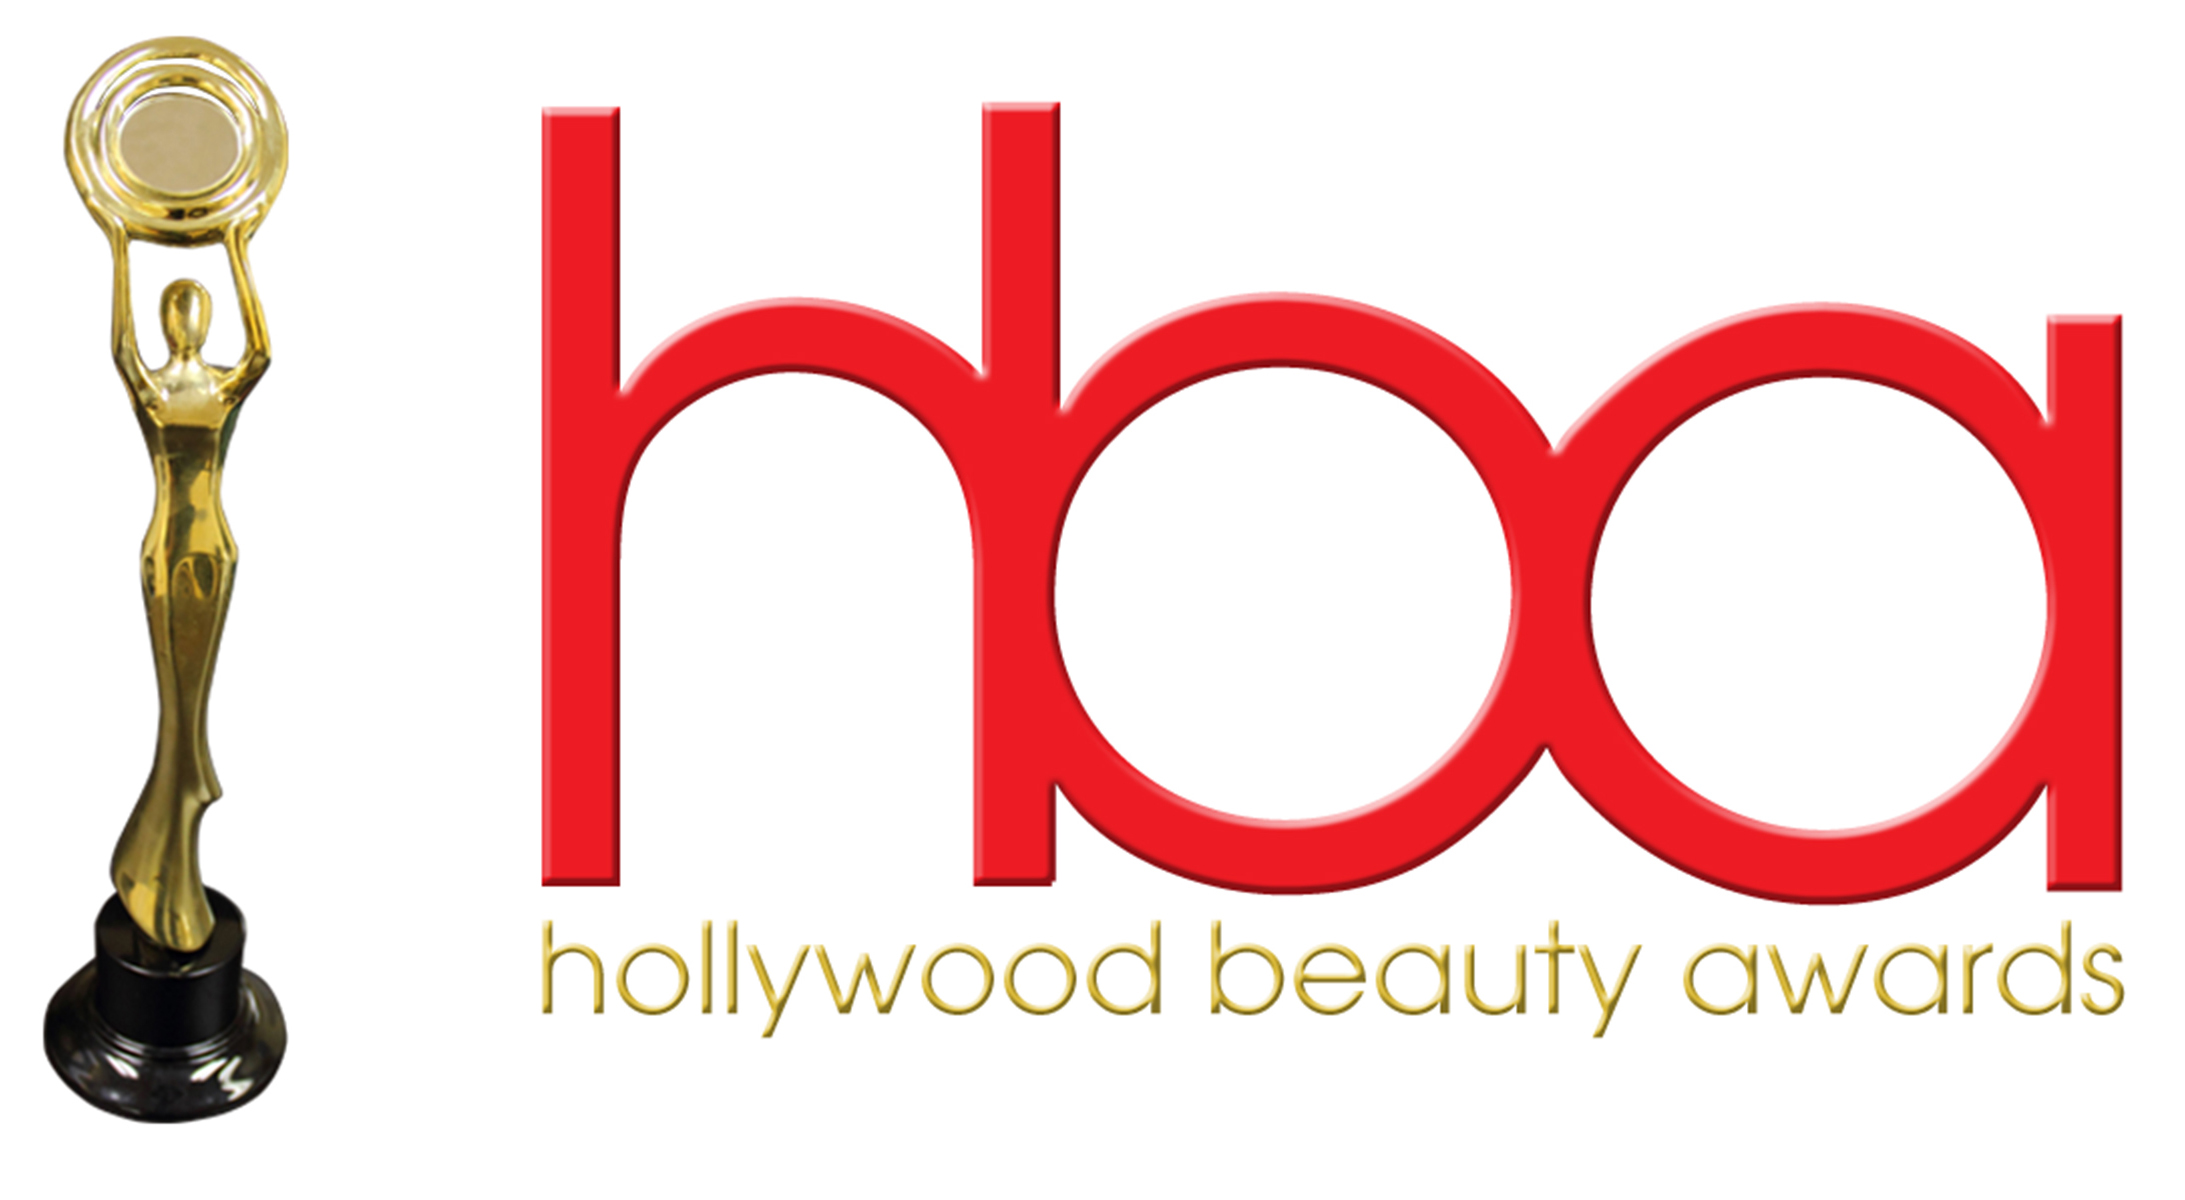 hollywood beauty awards 2019 honorees and nominees